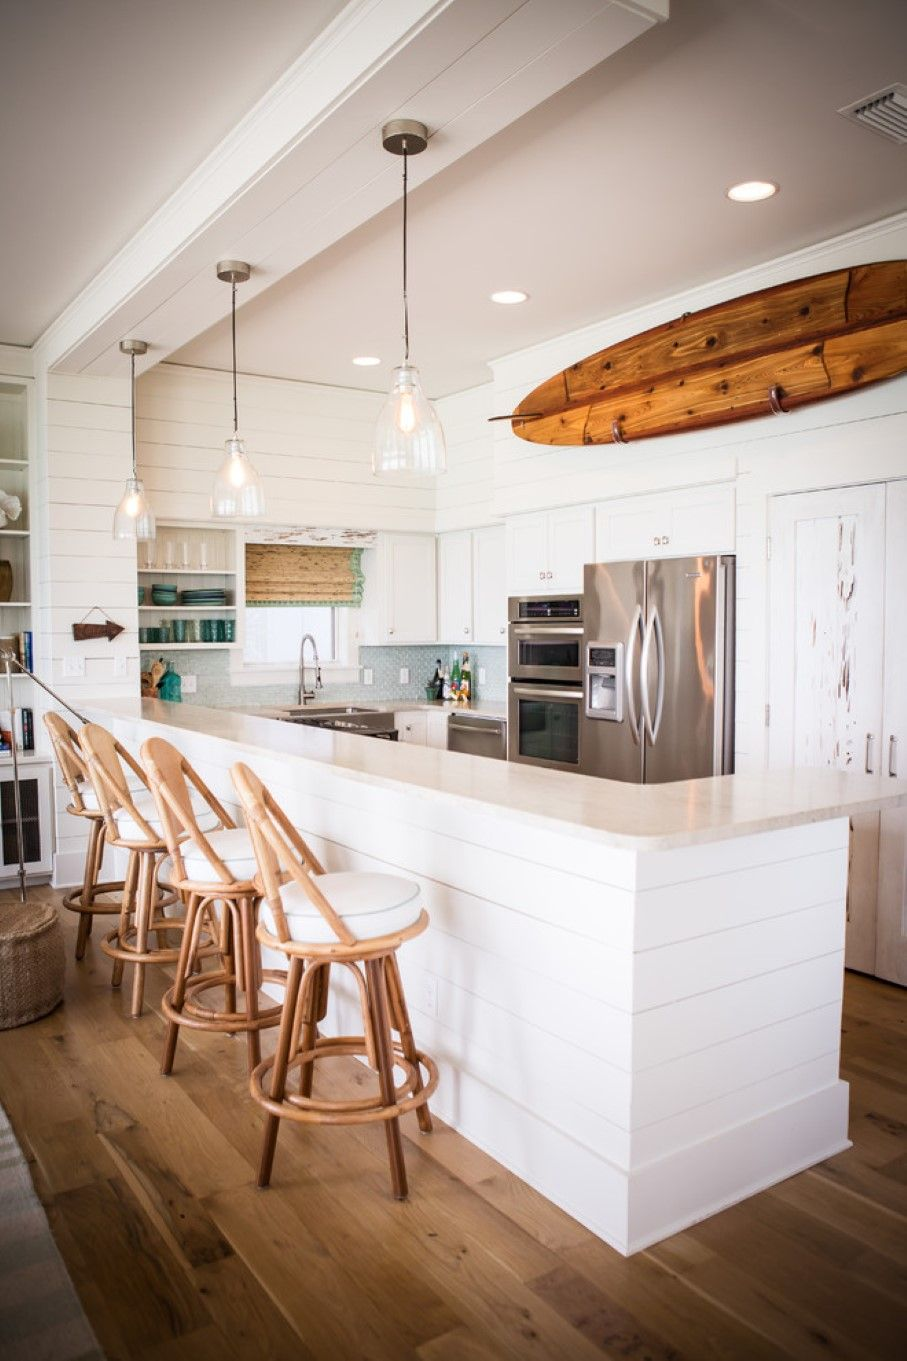 Interior kitchen with white cabinets design plus awesome wicker